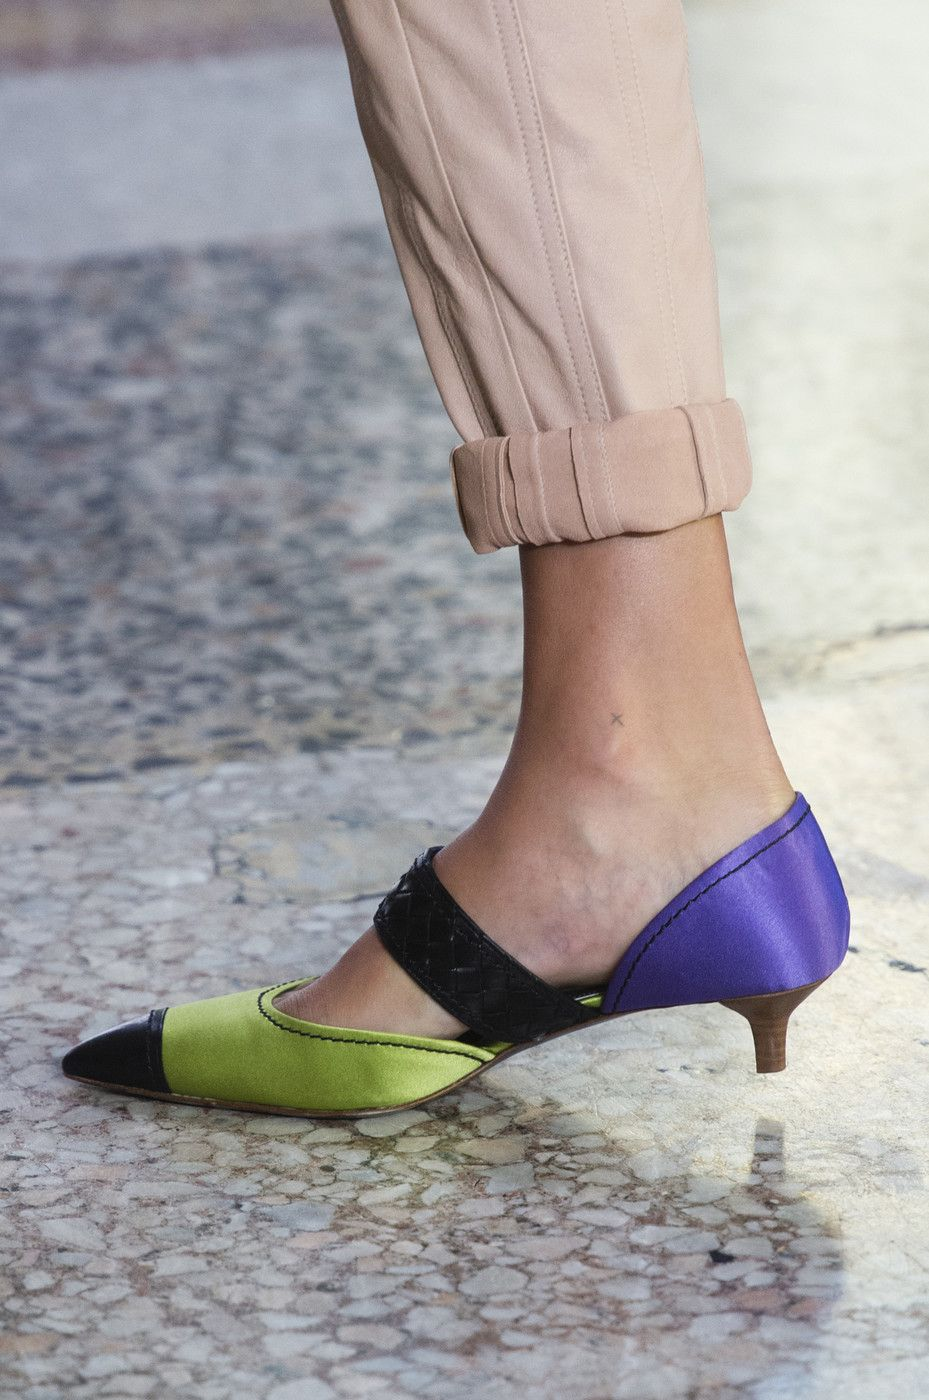 Pin On Eccentric Shoes